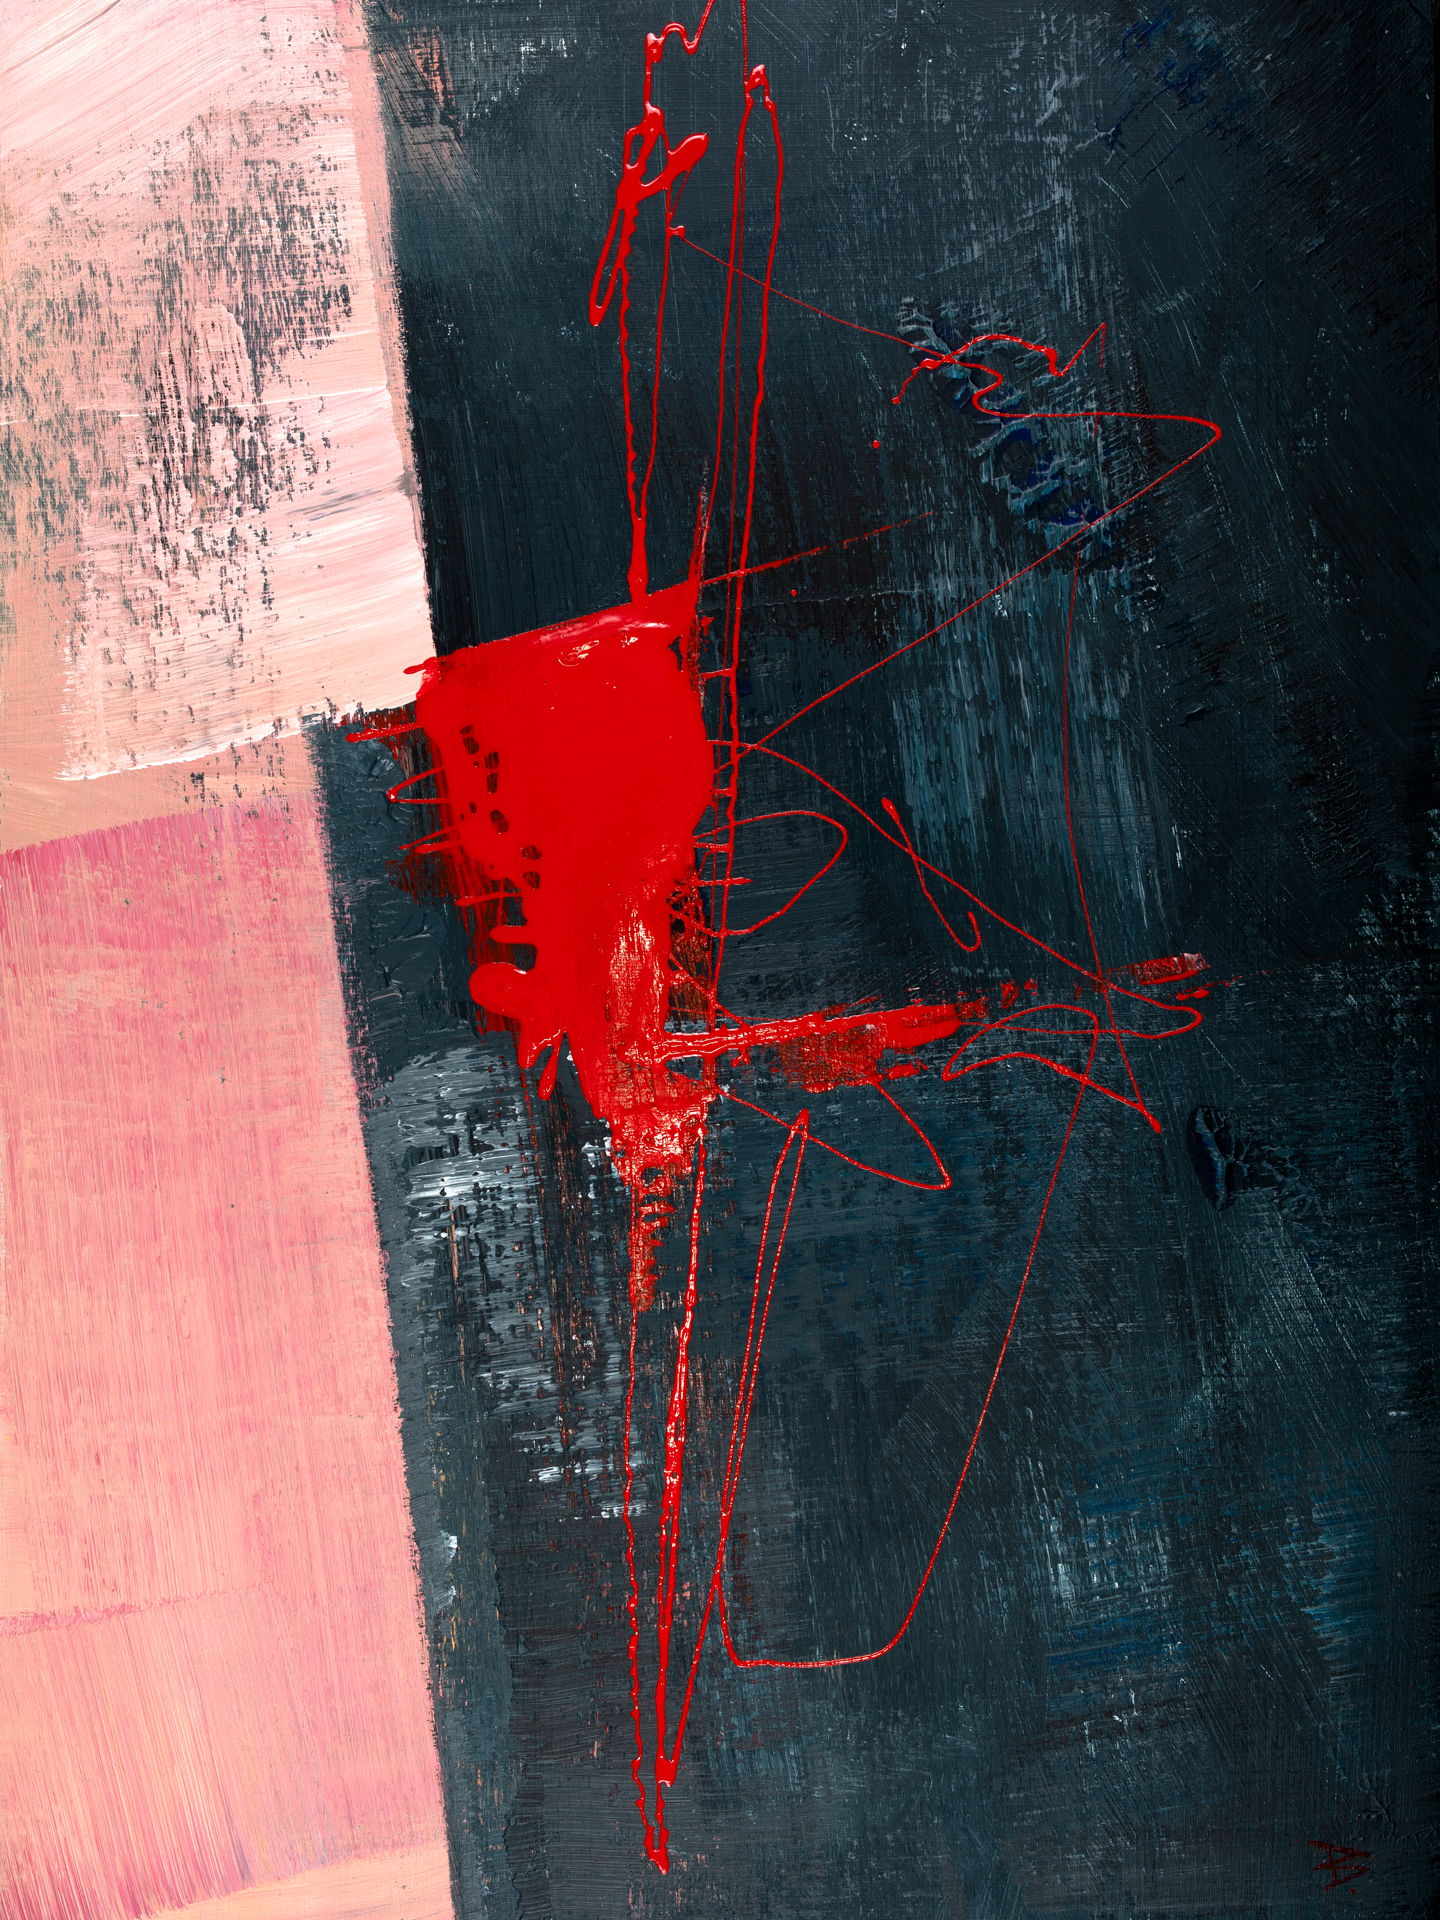 Gray_and_Red_10220_9_30x40cm, © Ernest Bisaev